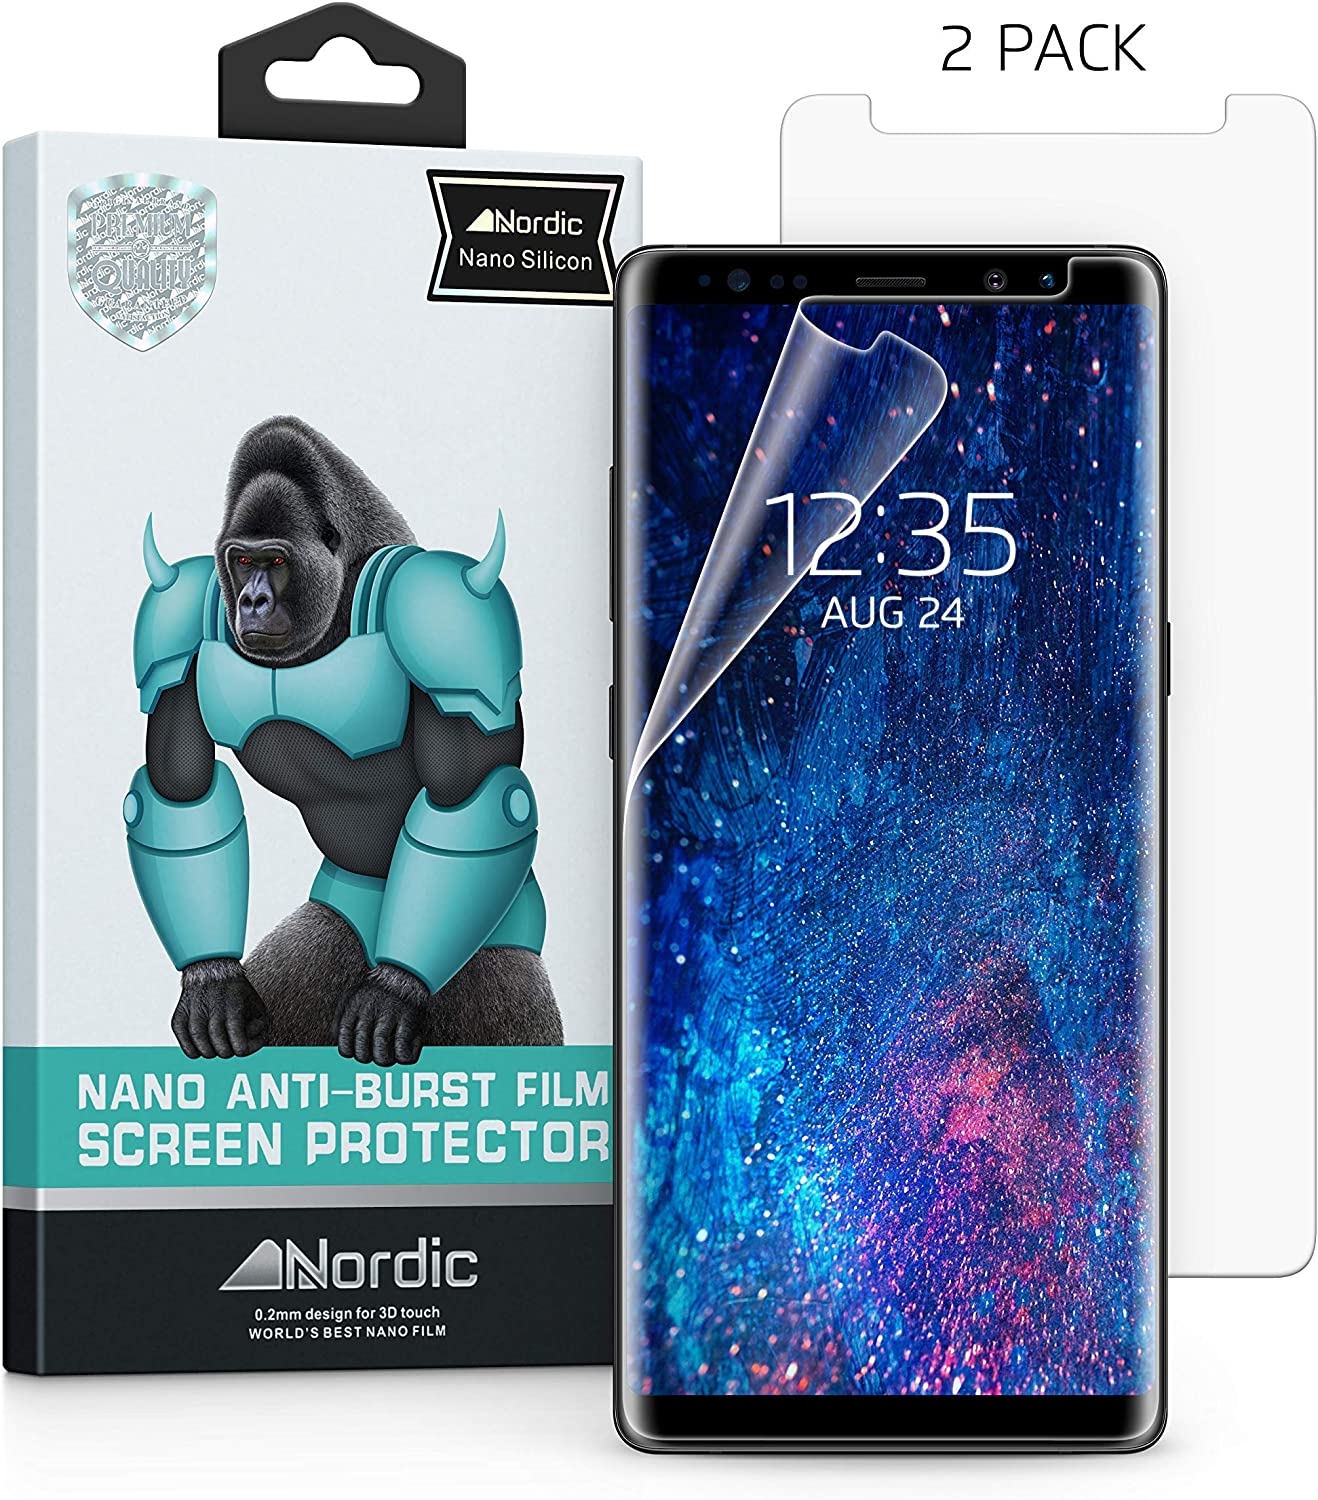 N2 Galaxy Note 8 Screen Protector, 2Packs Tempered Glass Screen Protector 3D Curved//HD Clarity//Case Friendly for Galaxy Note 8 Easy Bubble-Free Installation